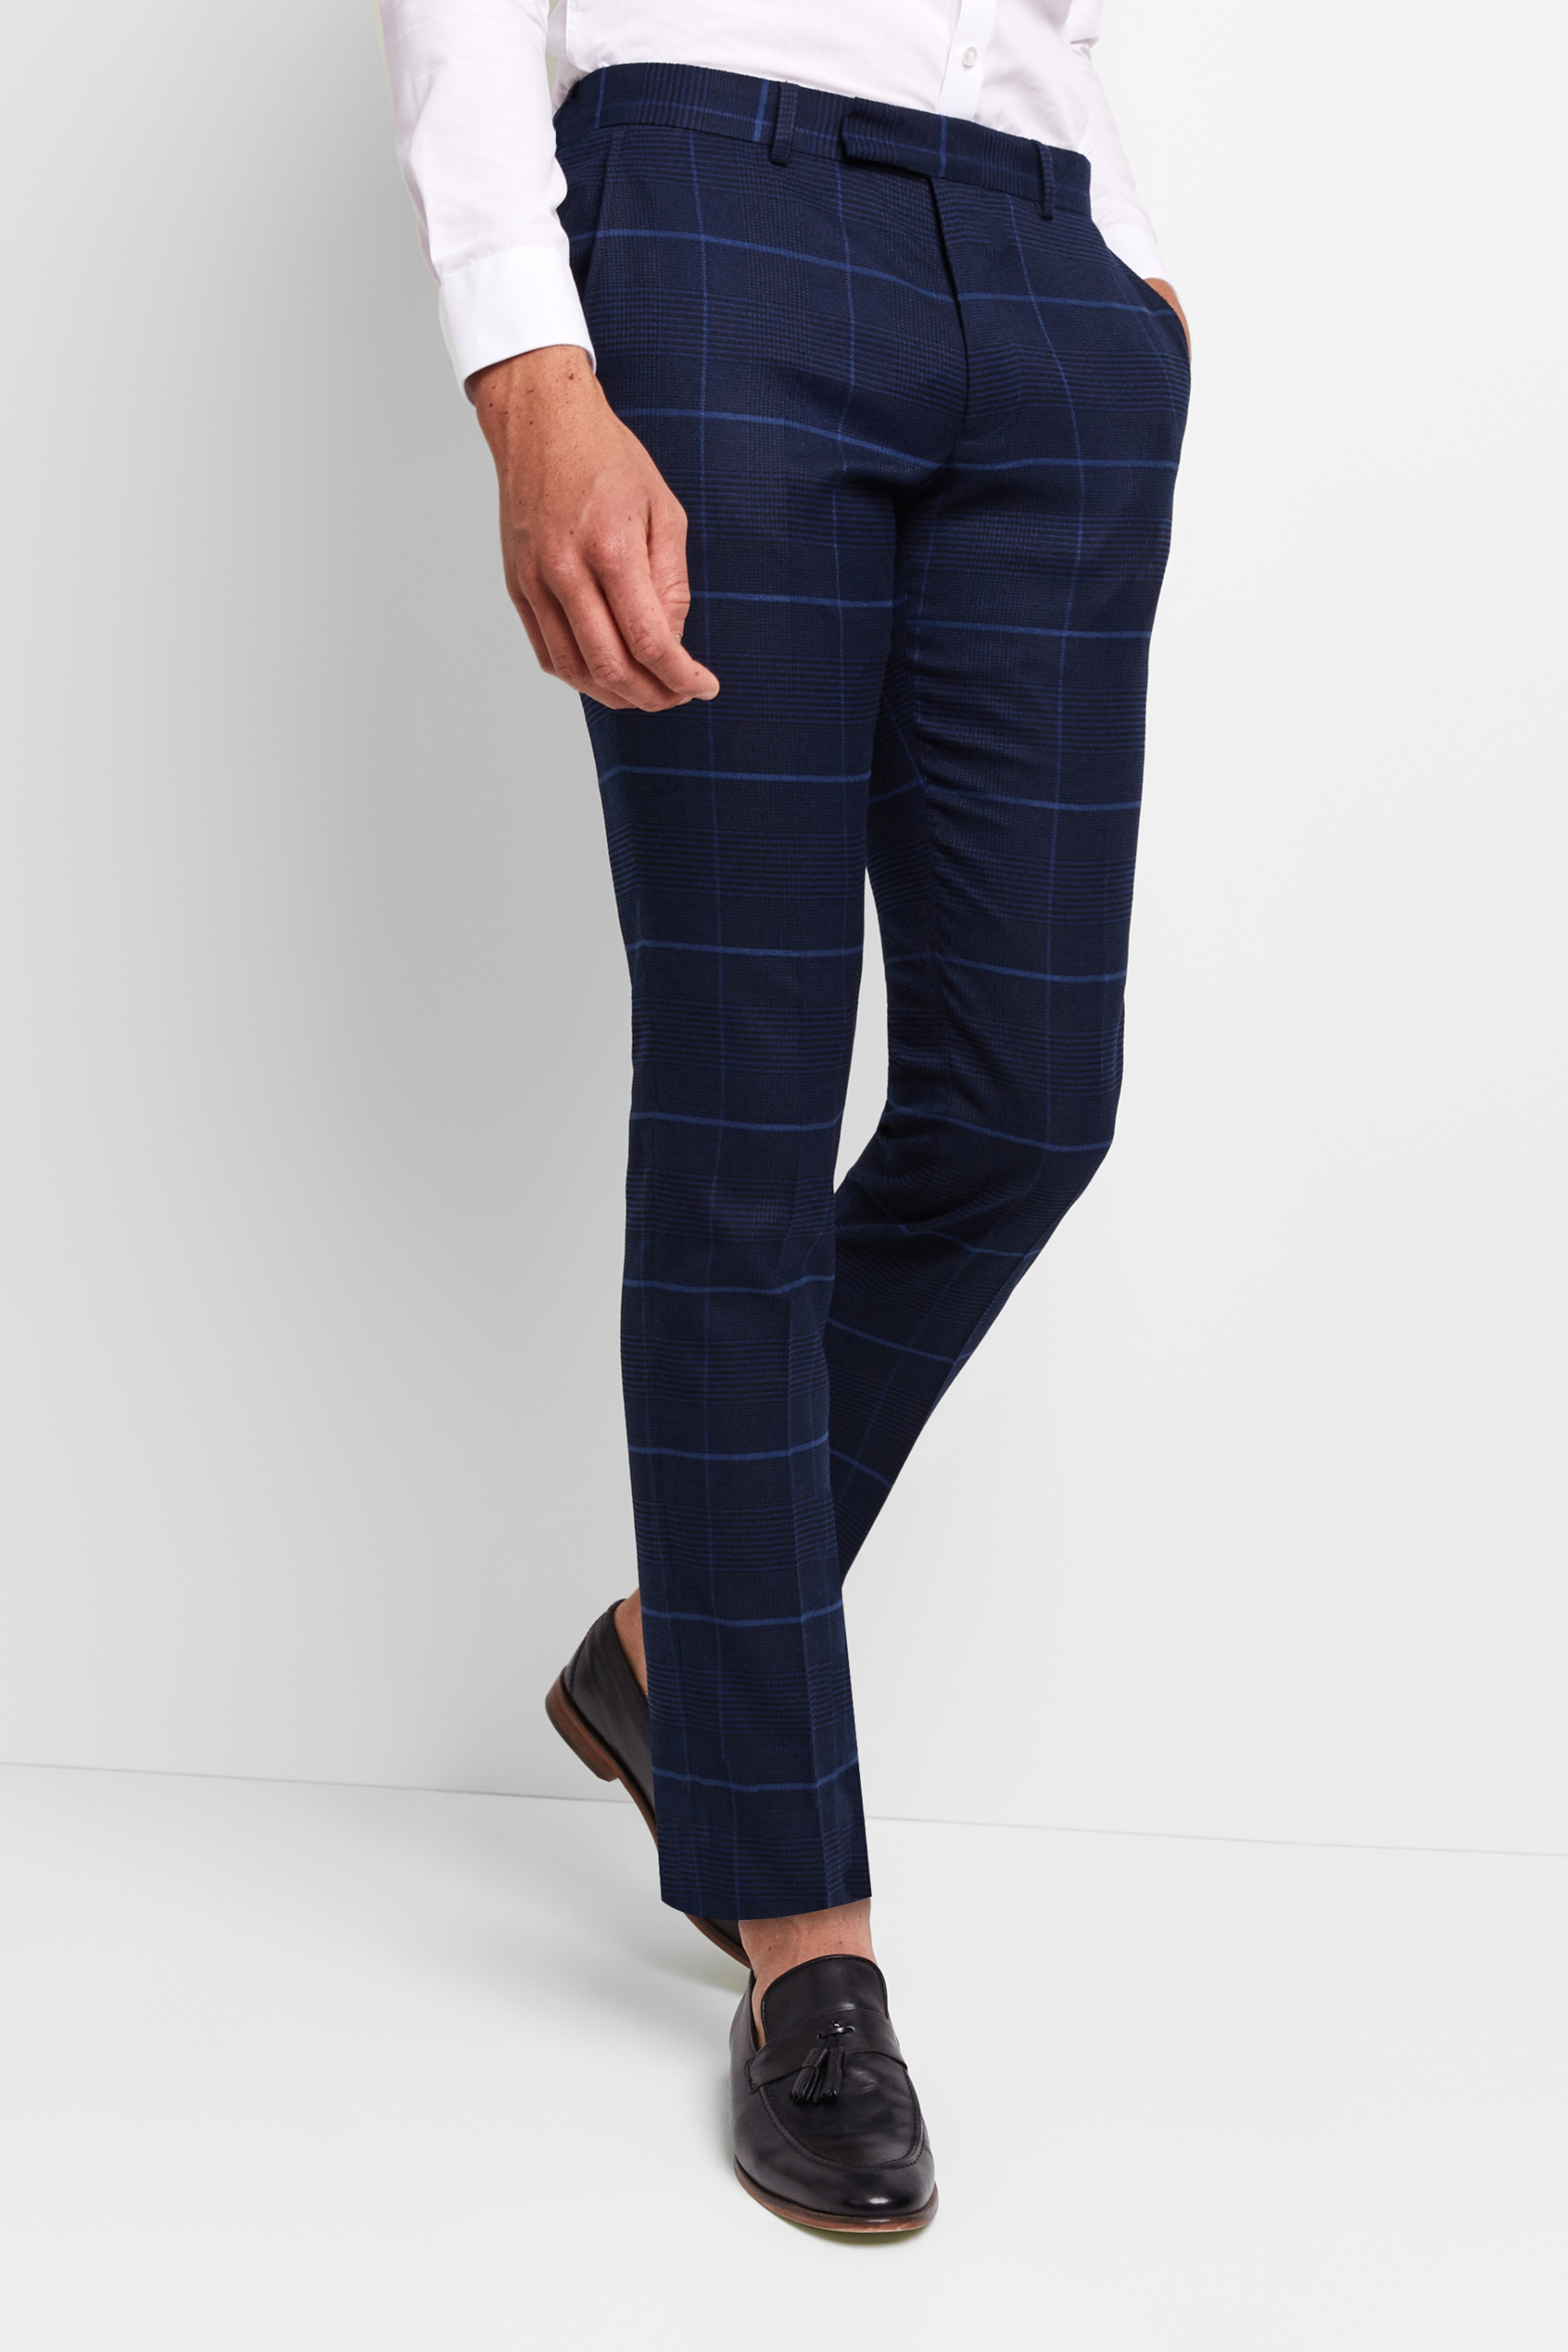 Moss London Skinny Fit Large Blue Check Trousers